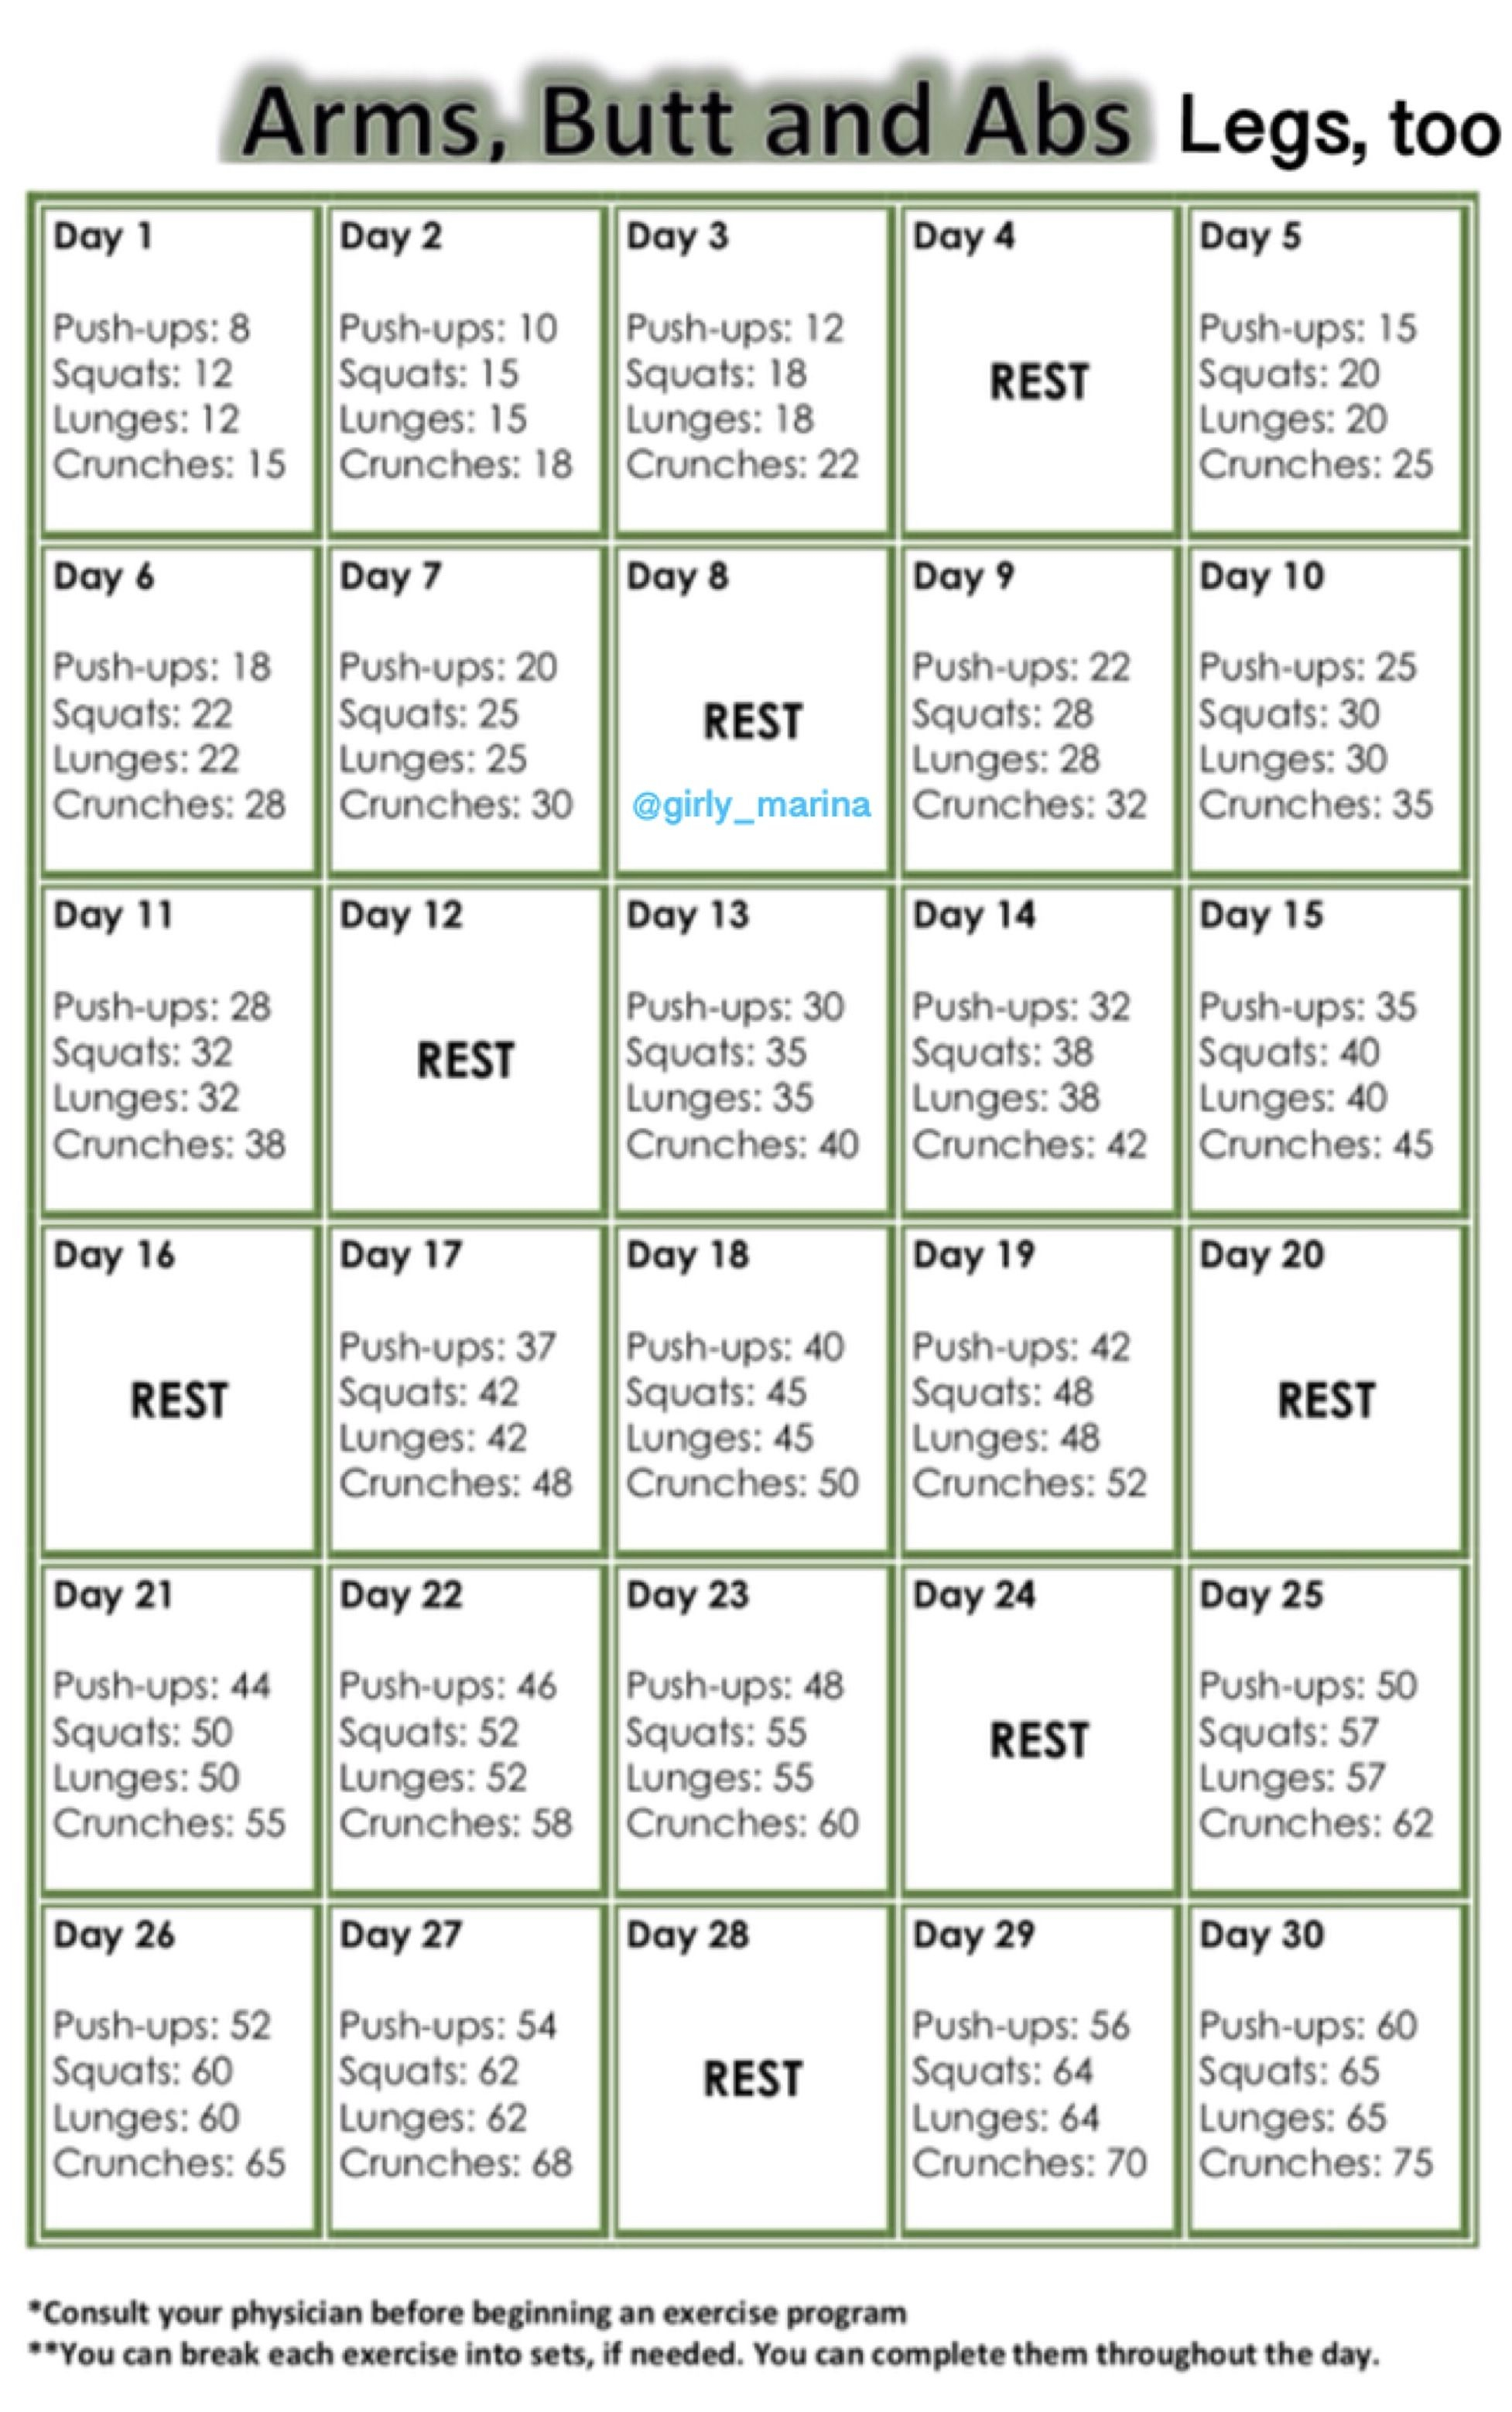 Pin On Health And Fitness In 30 Day Butt Gut And Leg Challenge Printable